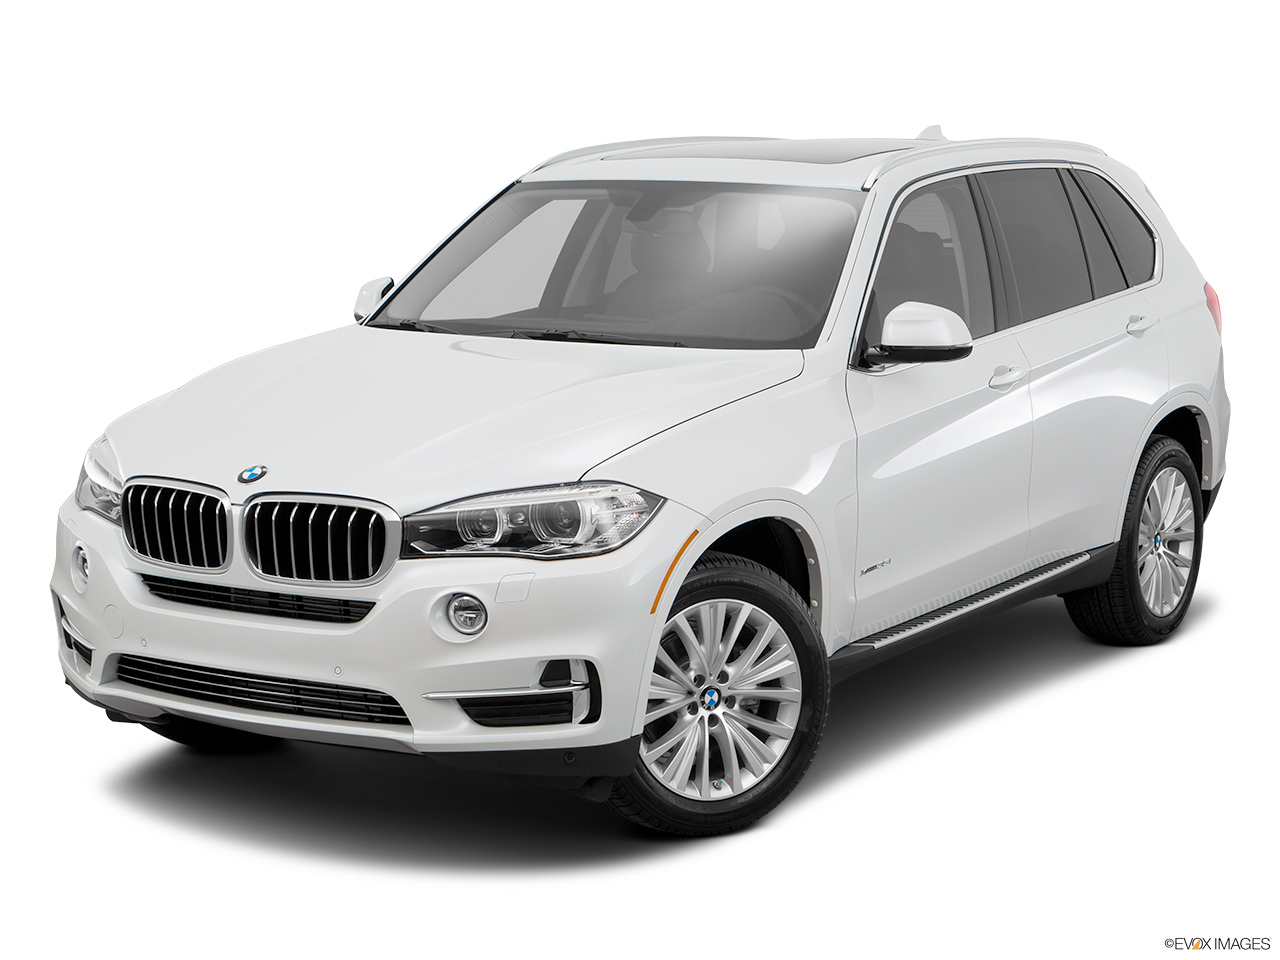 bmw x5 price in bahrain new bmw x5 photos and specs yallamotor. Black Bedroom Furniture Sets. Home Design Ideas